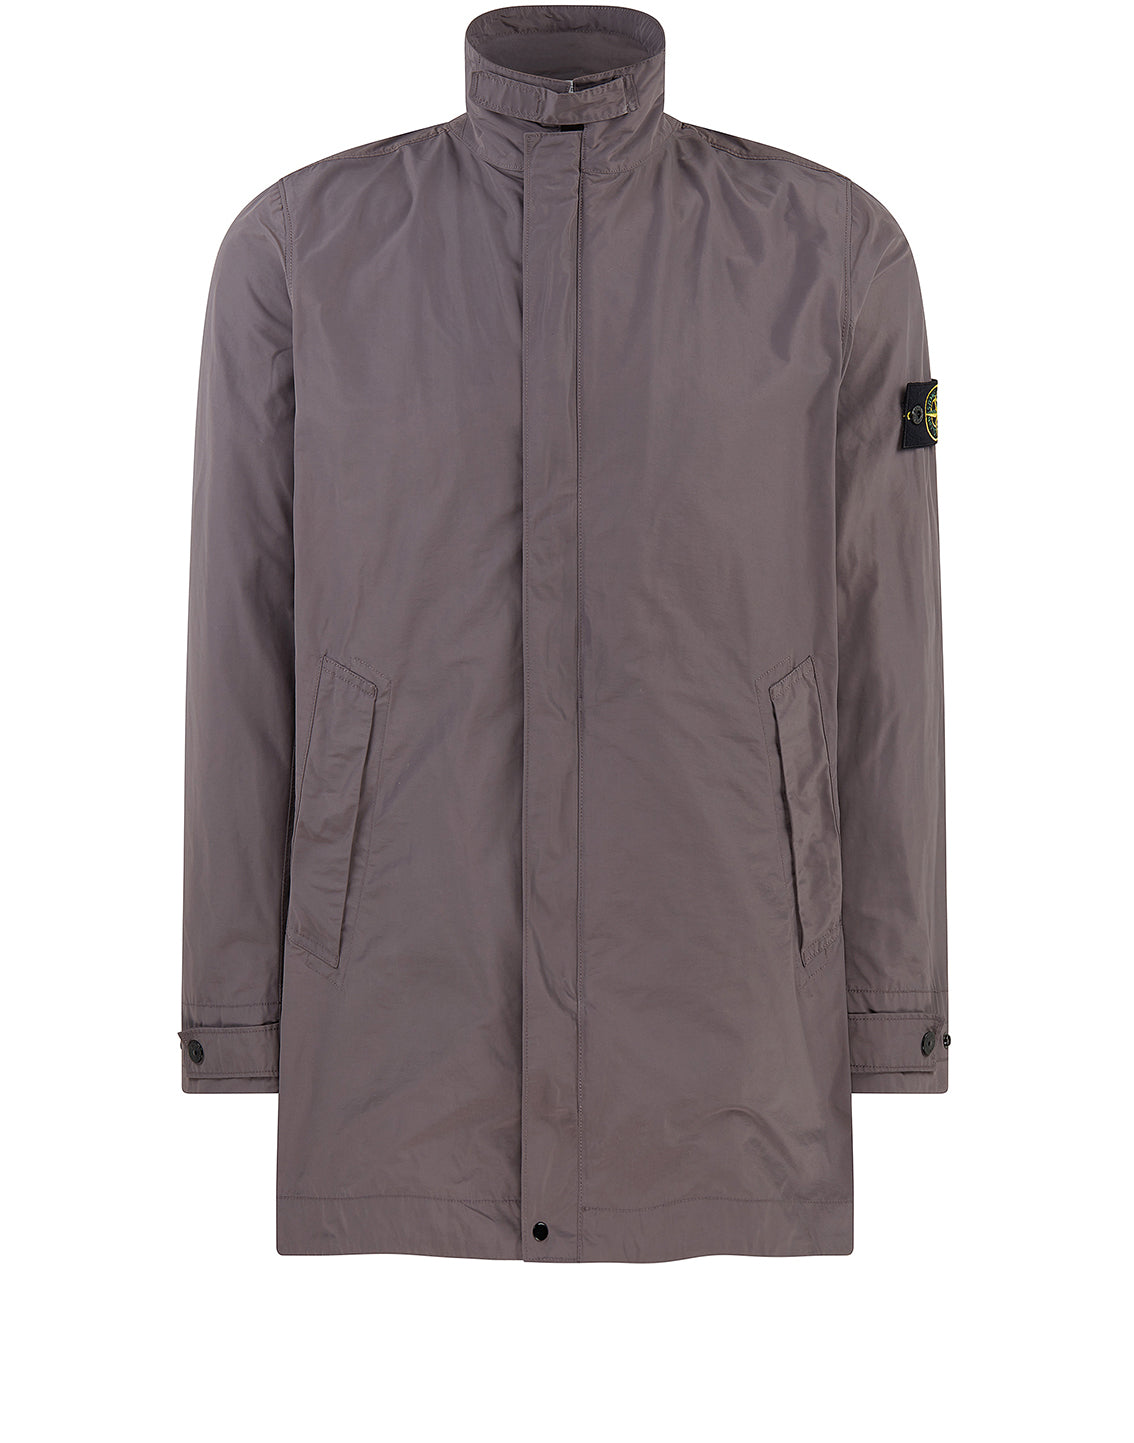 41222 MICRO REPS Jacket in Blue Grey